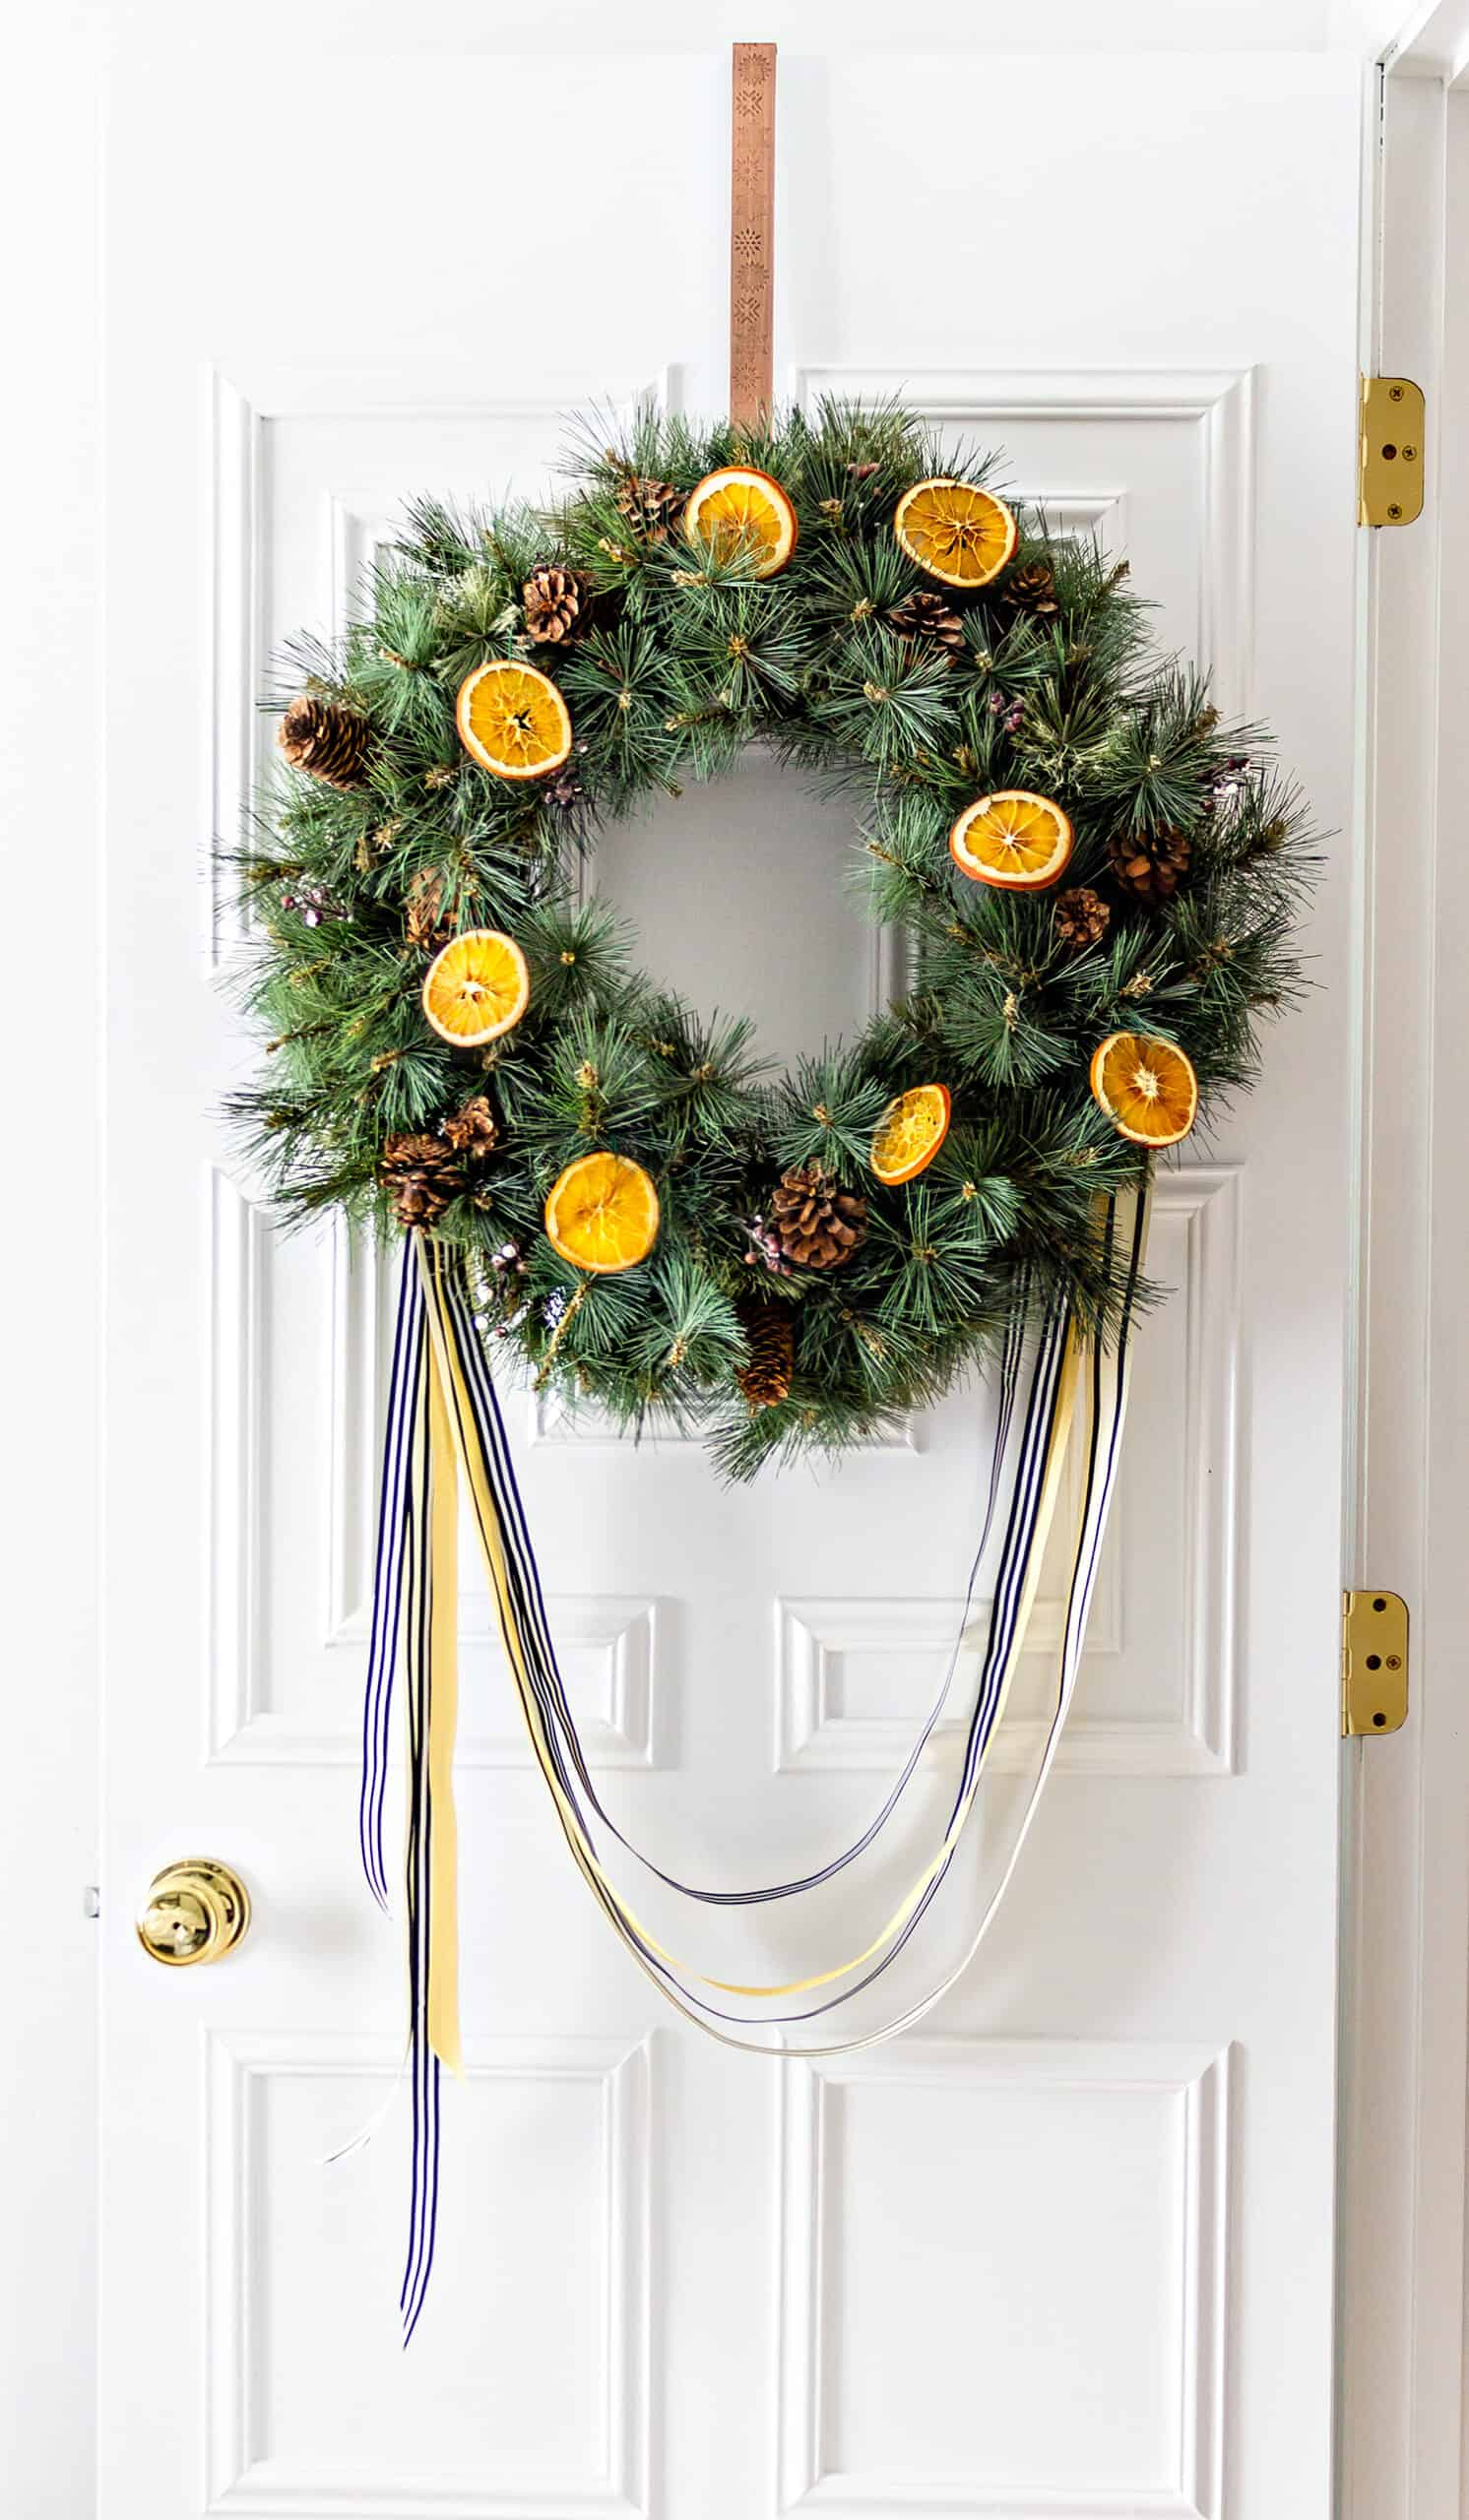 Faux green wreath with dried orange slices and ribbon. How to bake orange slices to use in holiday decor.